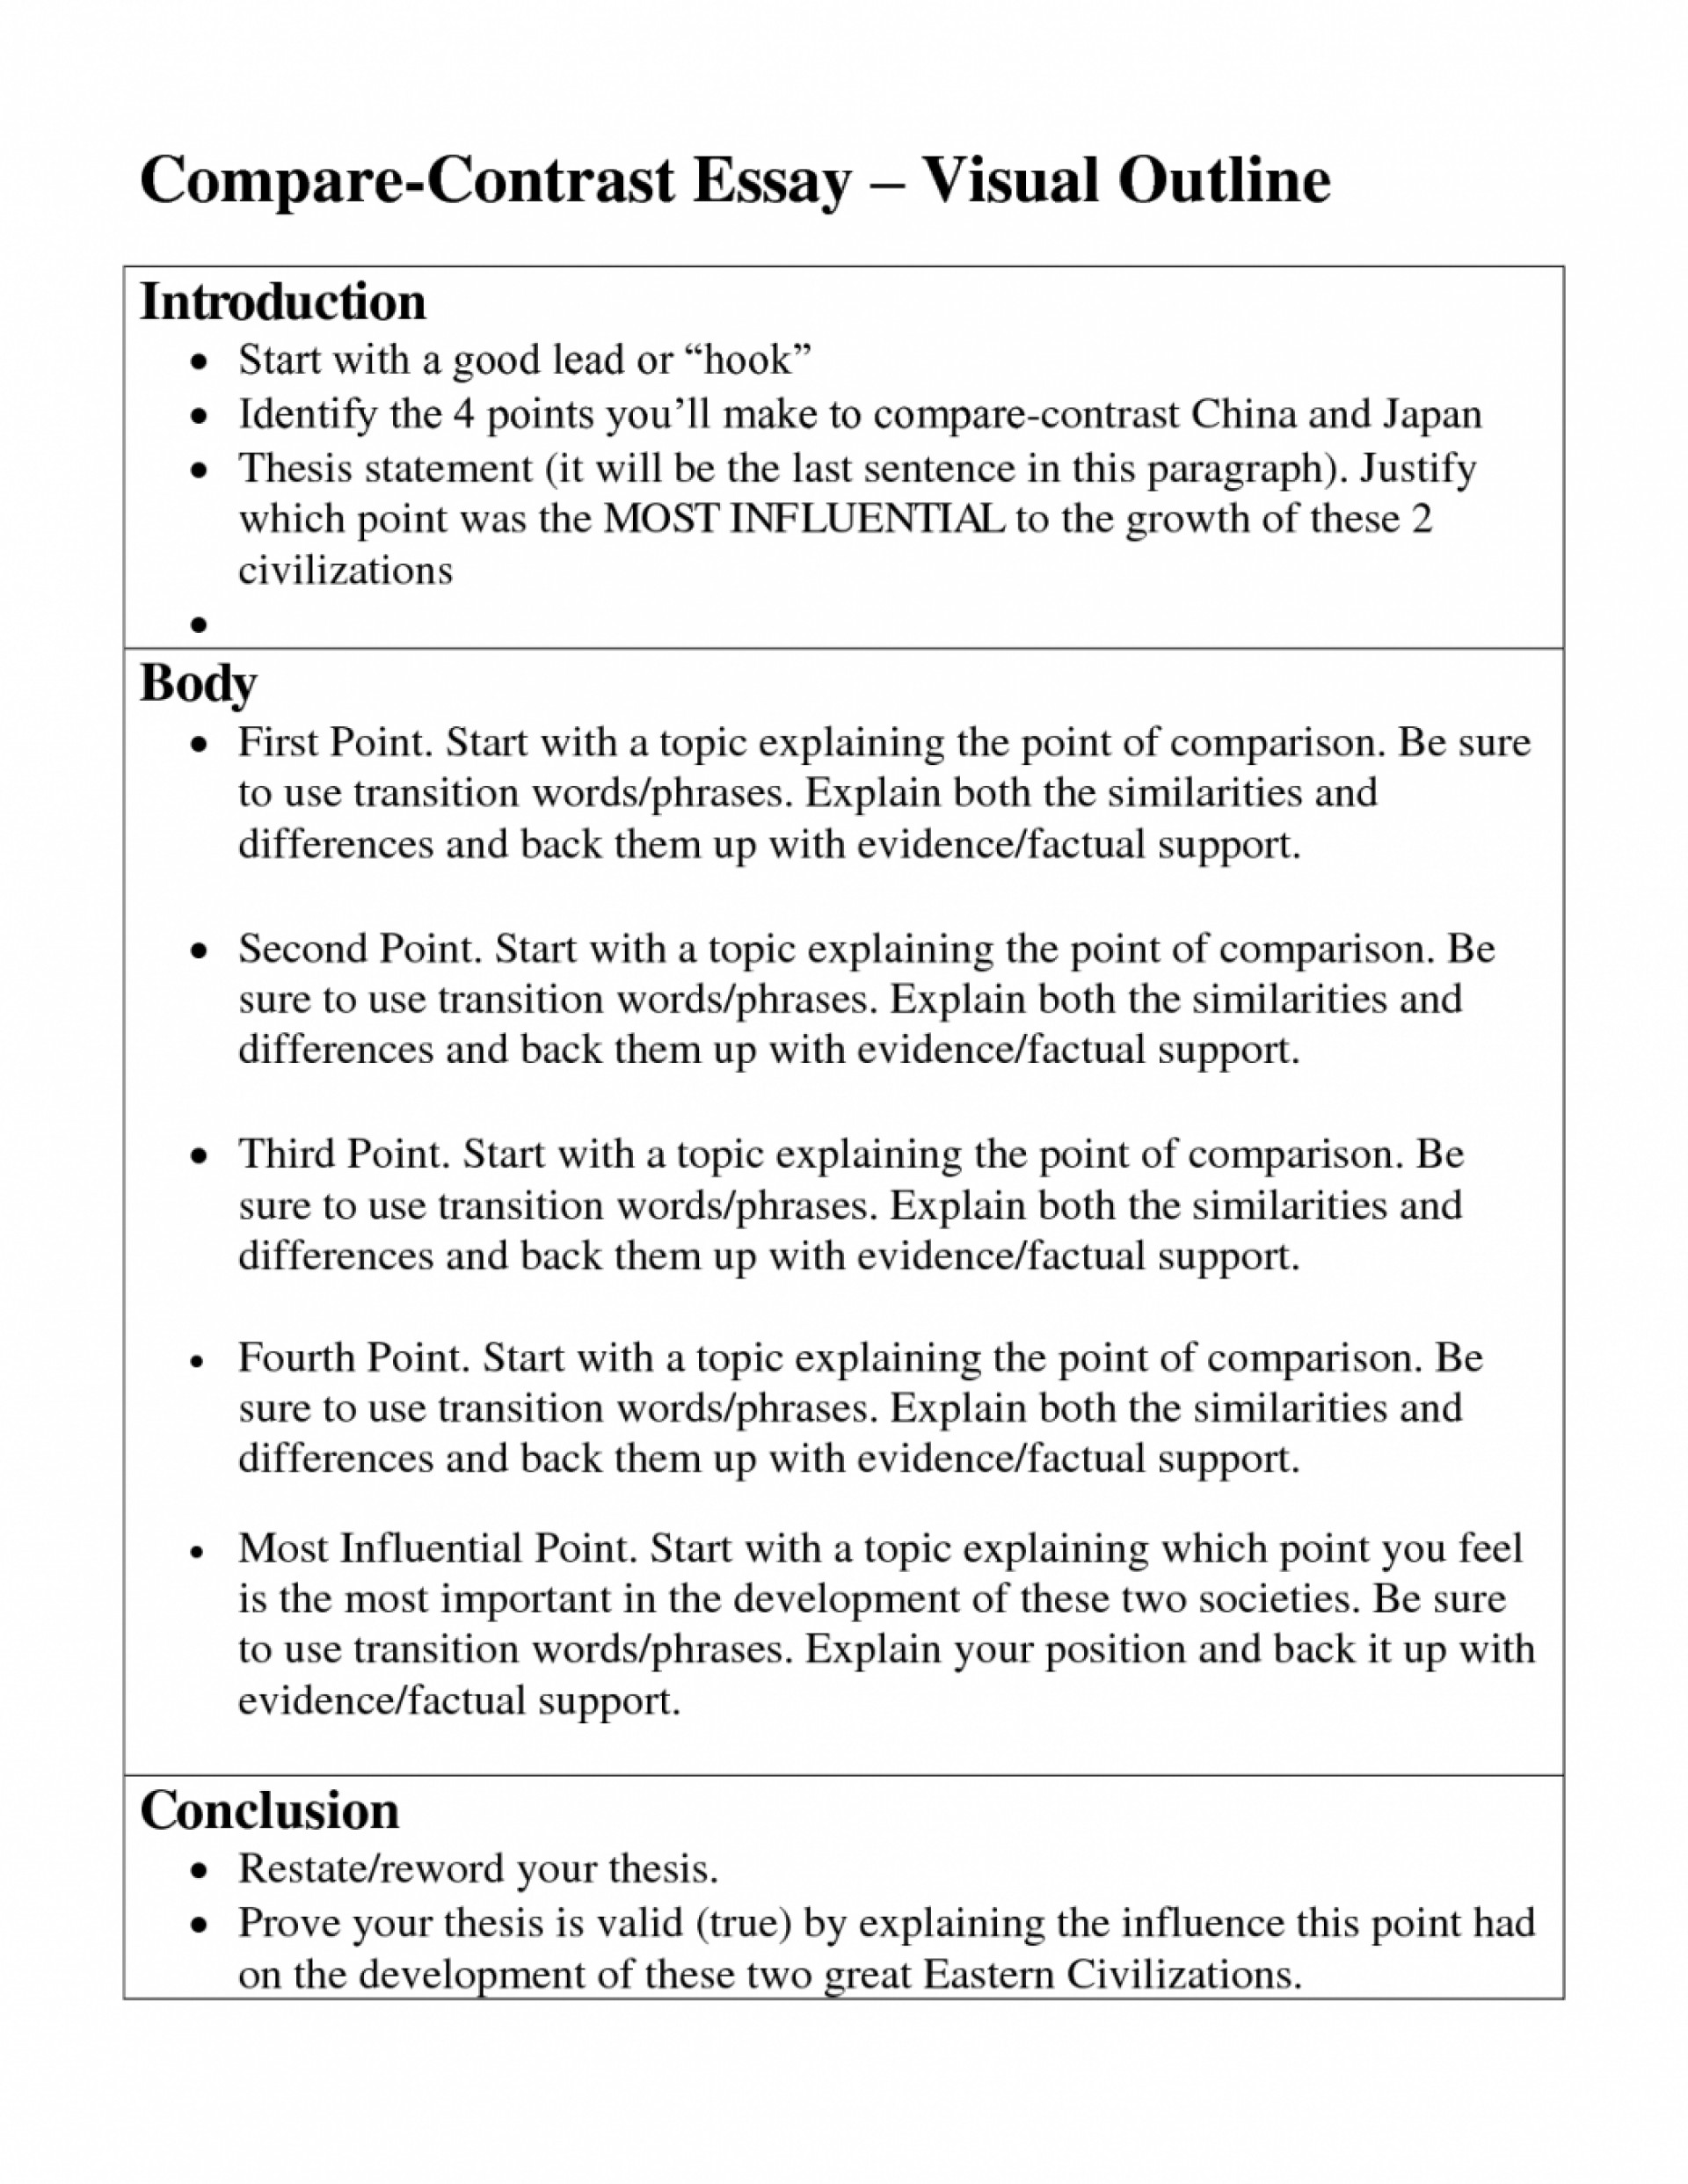 011 Compare And Contrast Essay Topics For High School Students English College Pdf Research Paper 1048x1356 Good Exceptional Elementary In The Medical Field 1920